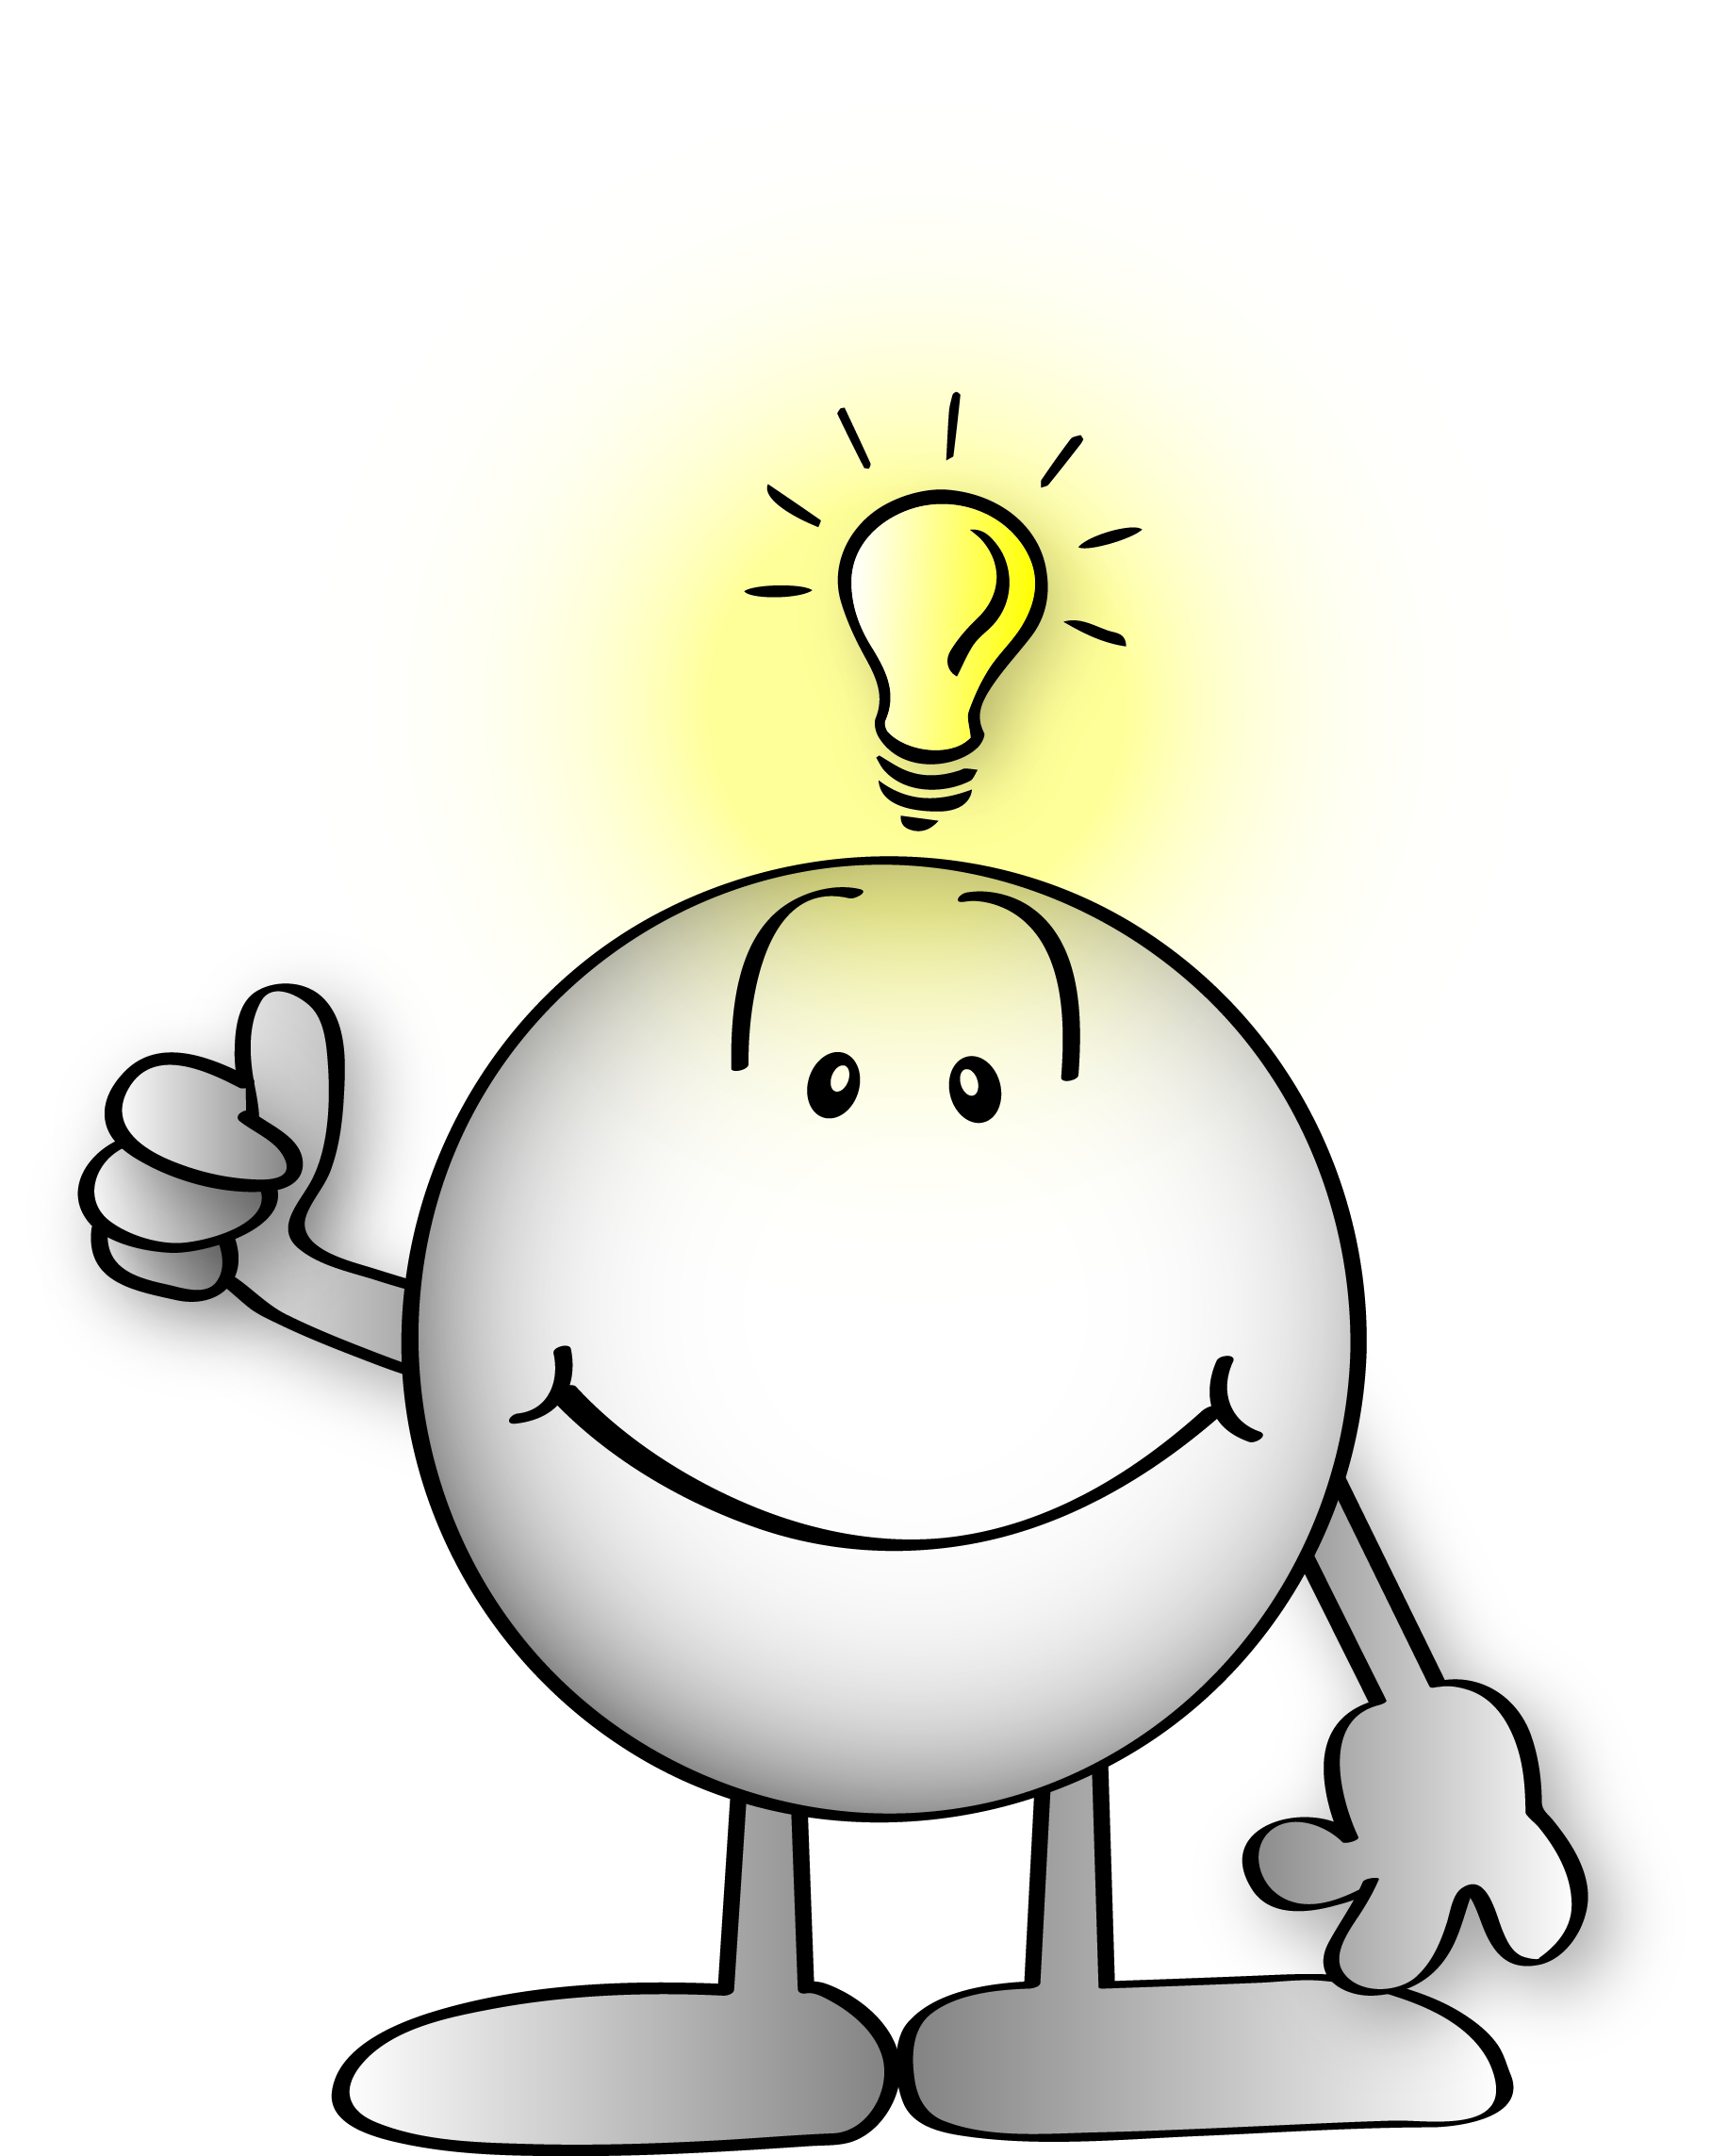 Idea - Link Building Ideas Without Guest Posting   Source